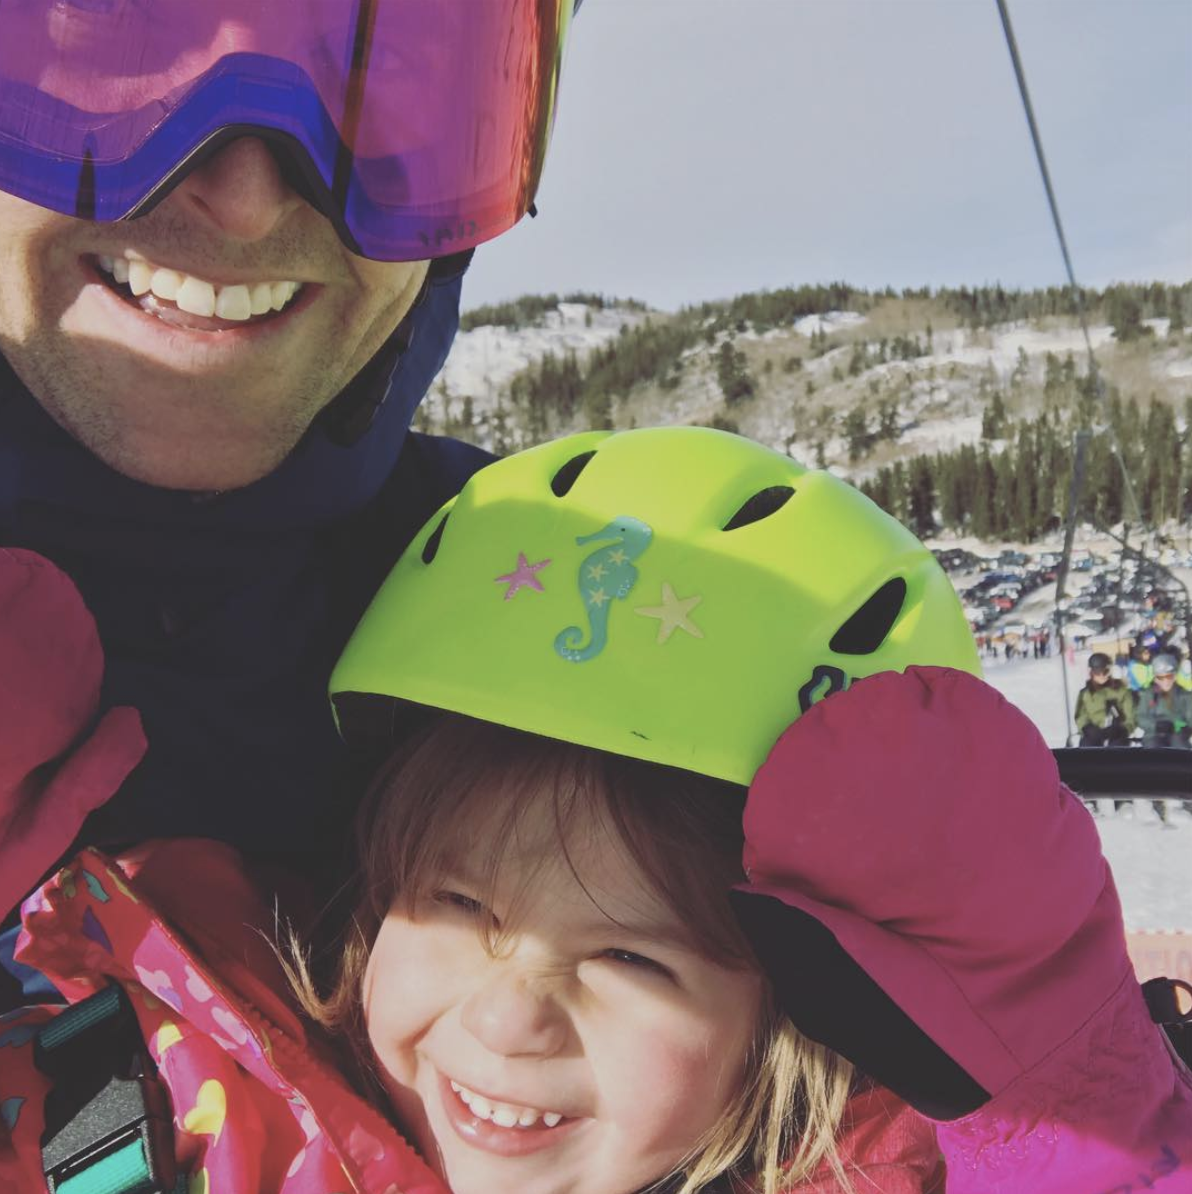 When I'm not at work, I'm outside. Here's a picture of my youngest daughter, Naomi, showing me around the mountain, refusing to wear her goggles.